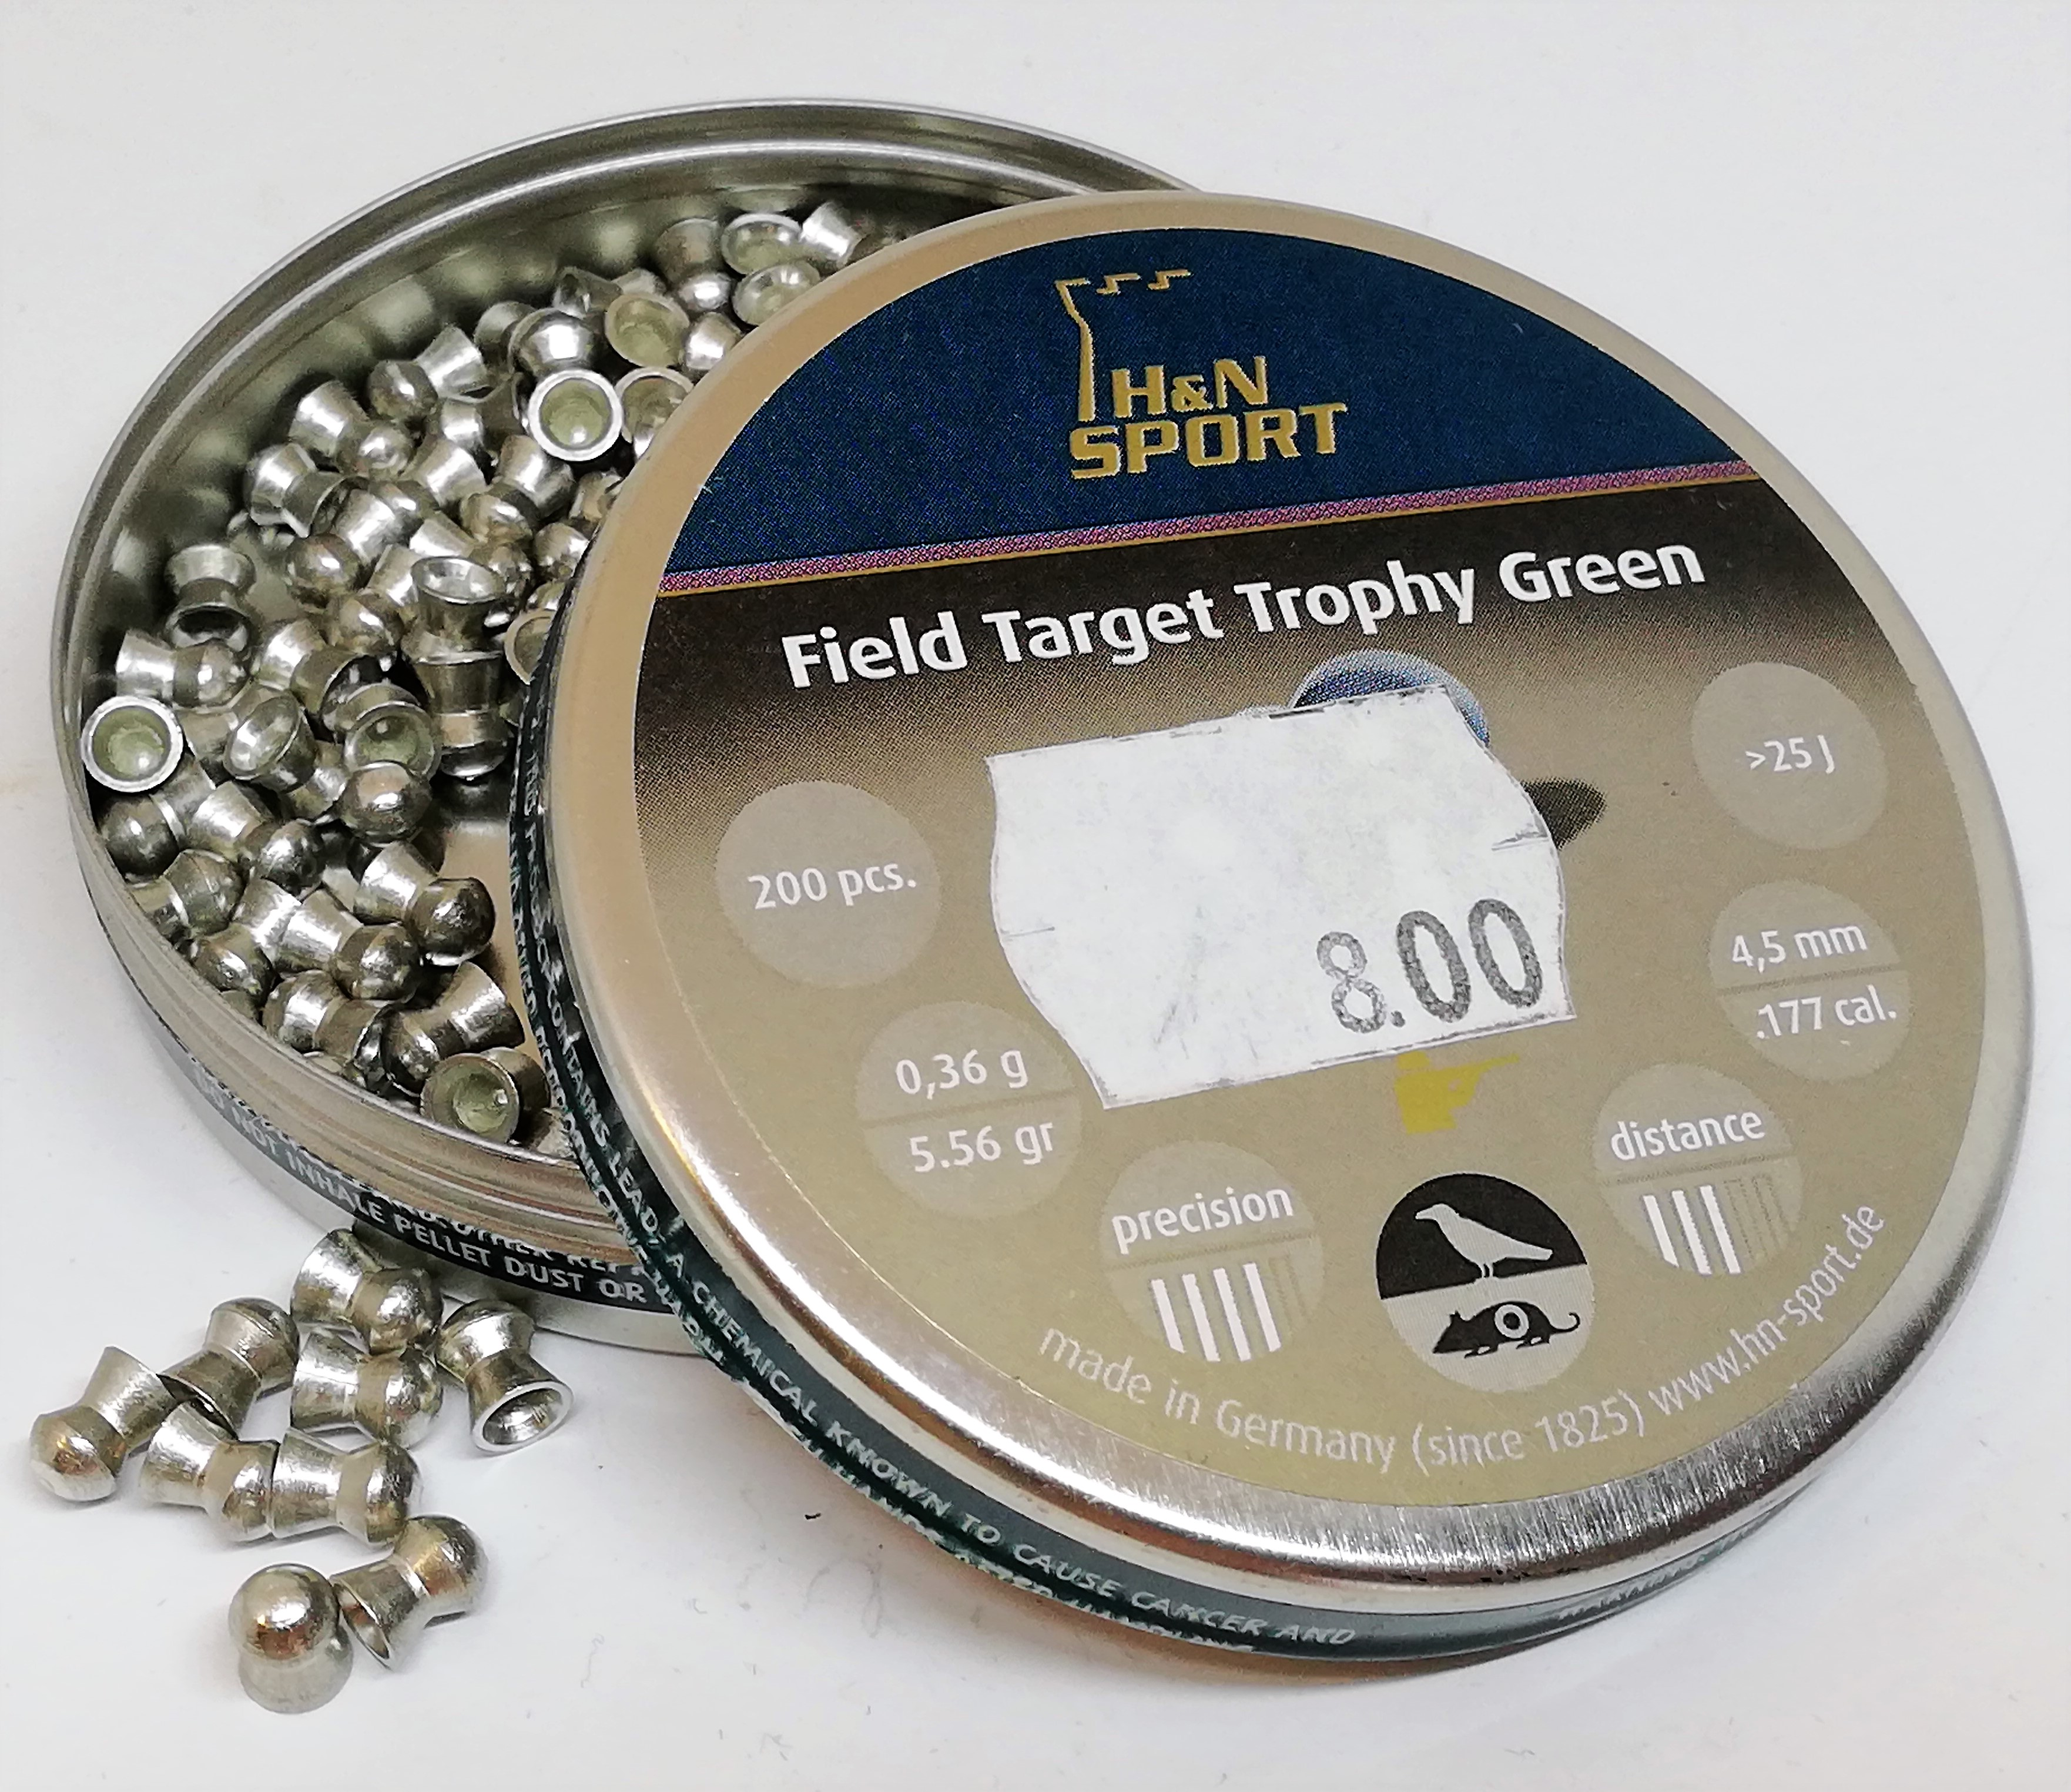 H&N Field Target Trophy Green 4,50mm